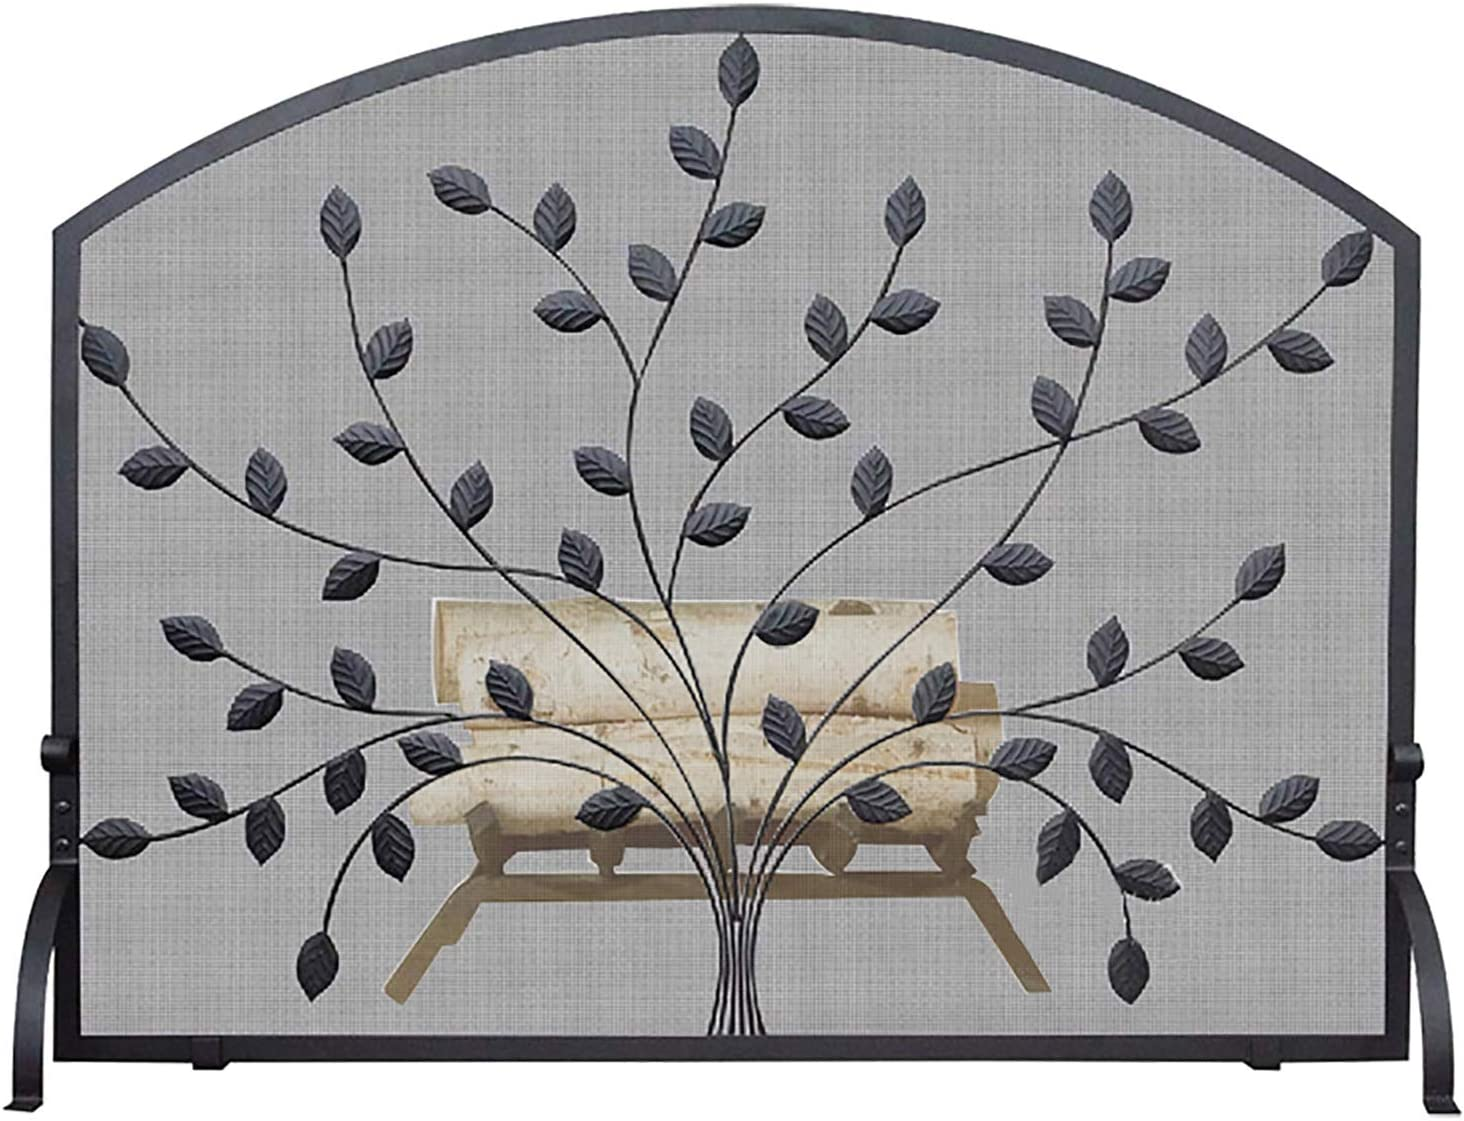 Fireplace Fixed famous price for sale Screens Traditional Leaf Arched Guard Free Black Fire